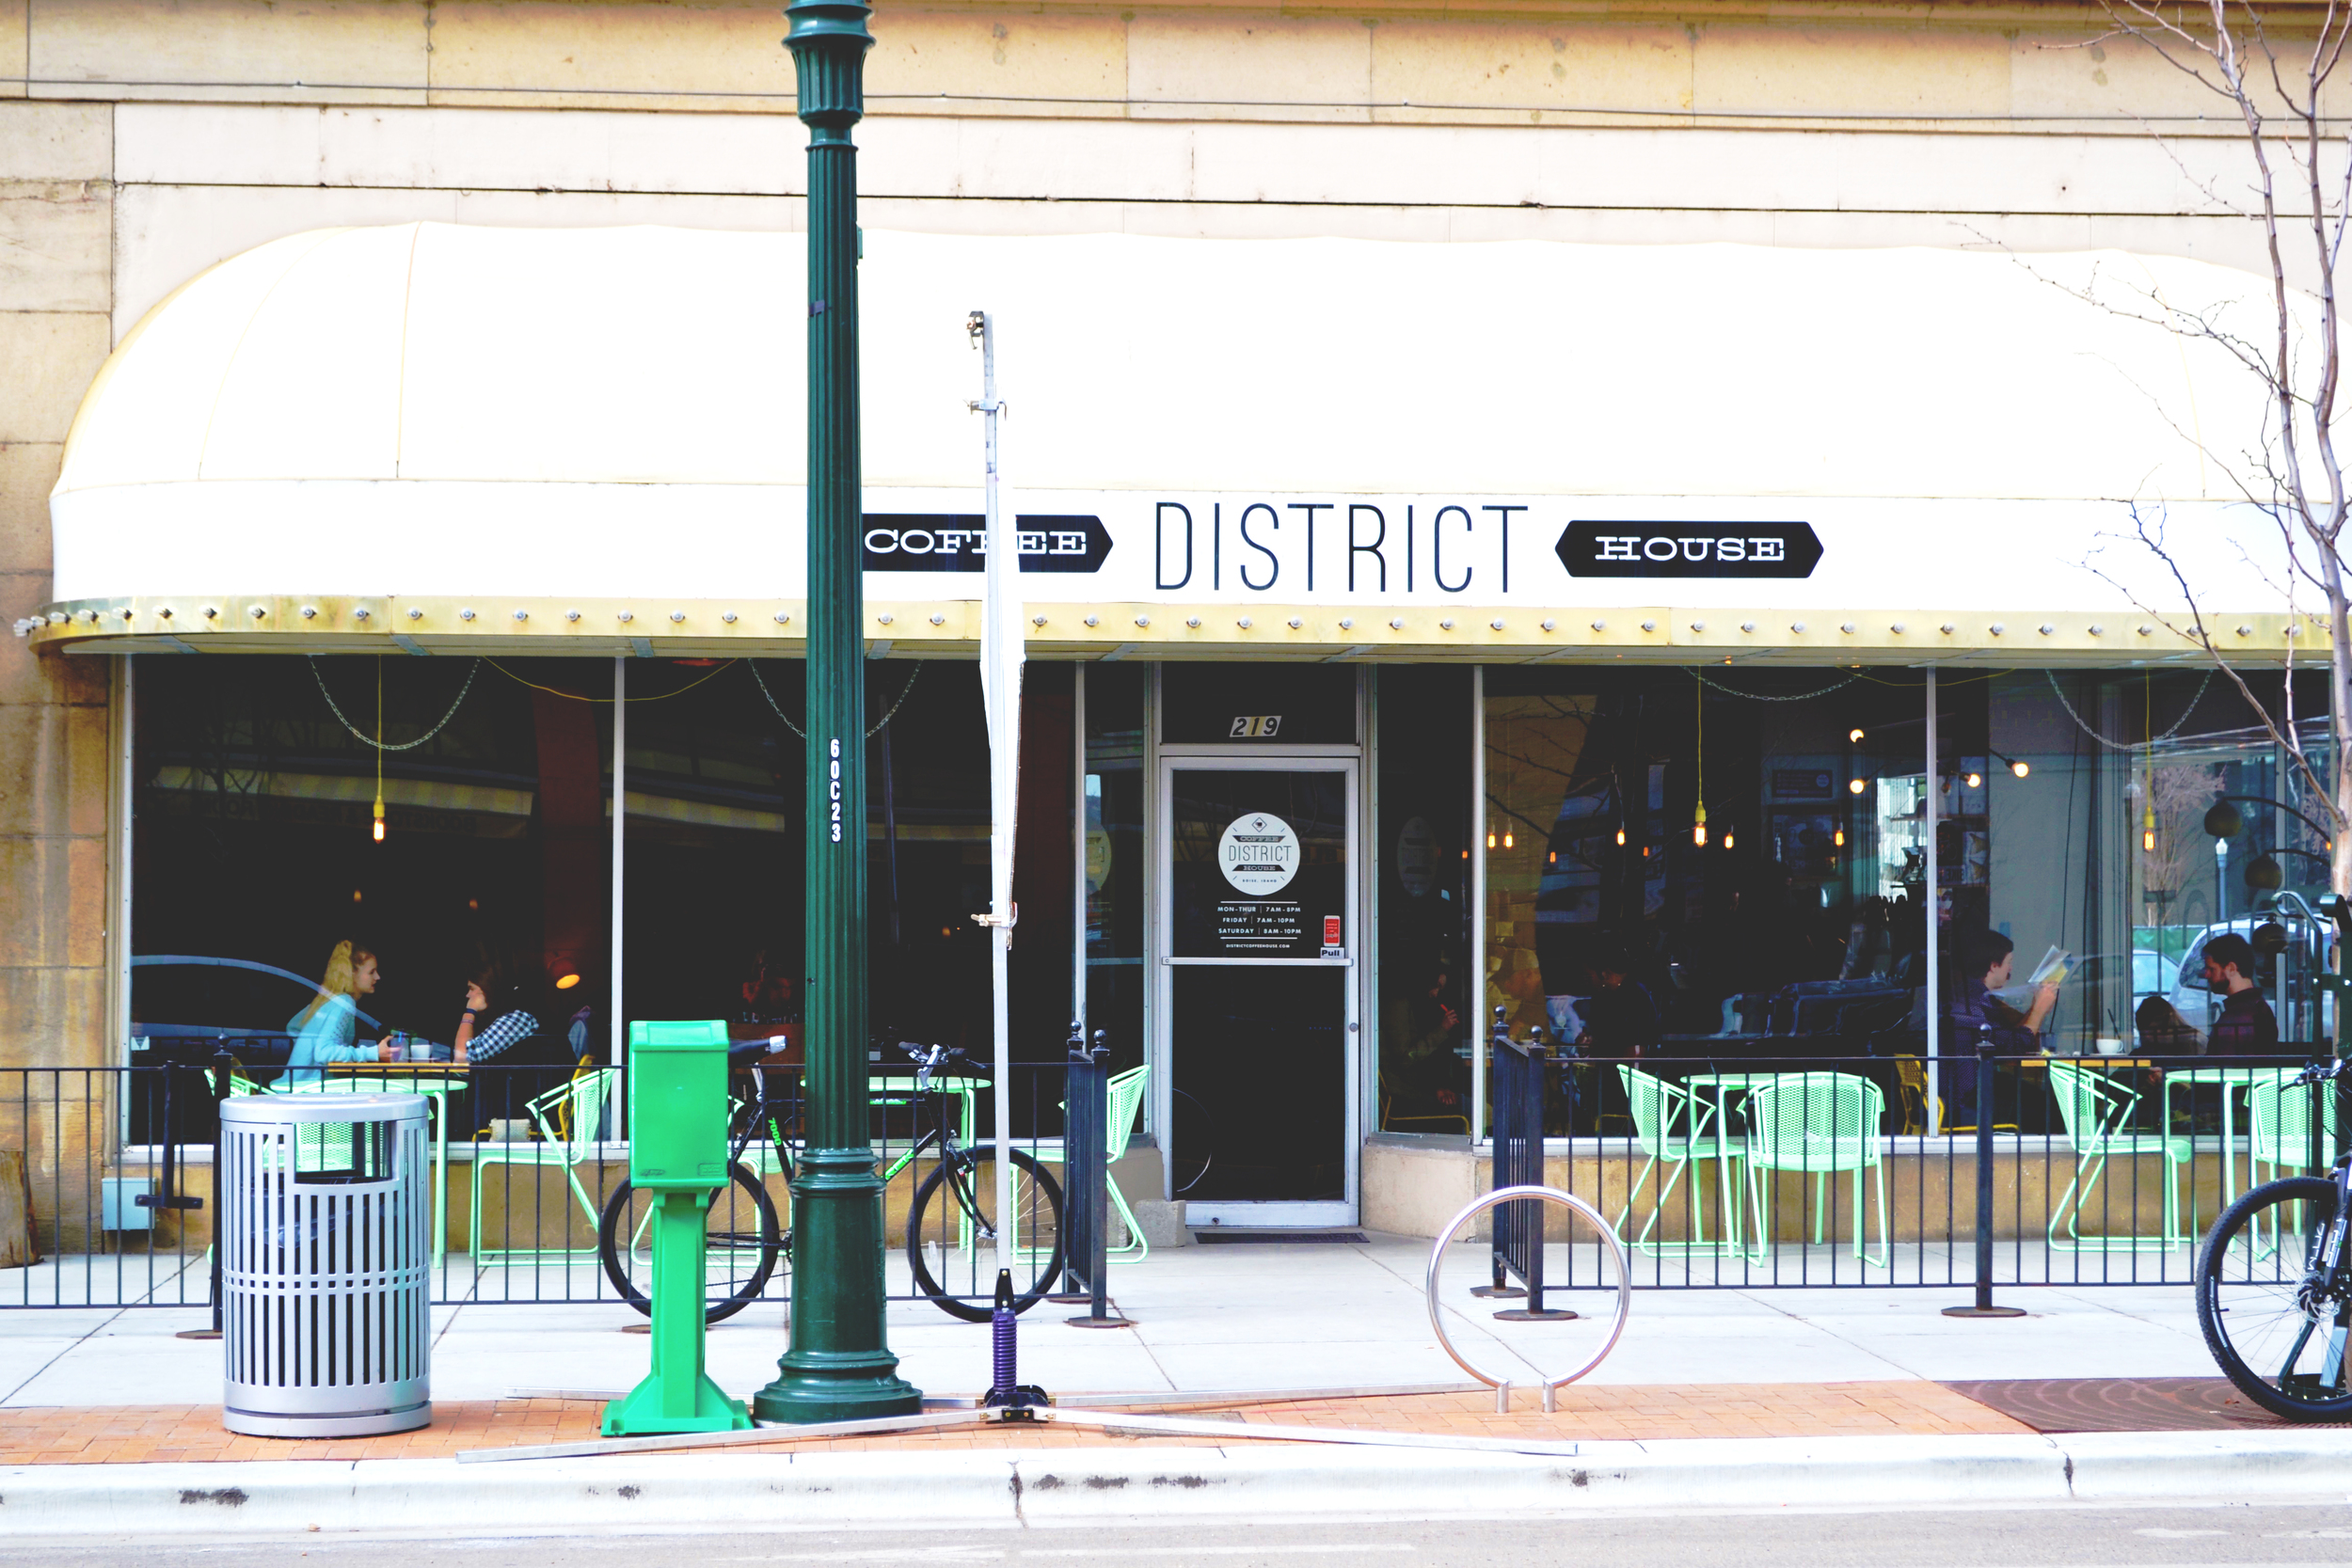 District Coffee House | Boise, Idaho | All Rights Reserved: Heather Woolery 2016